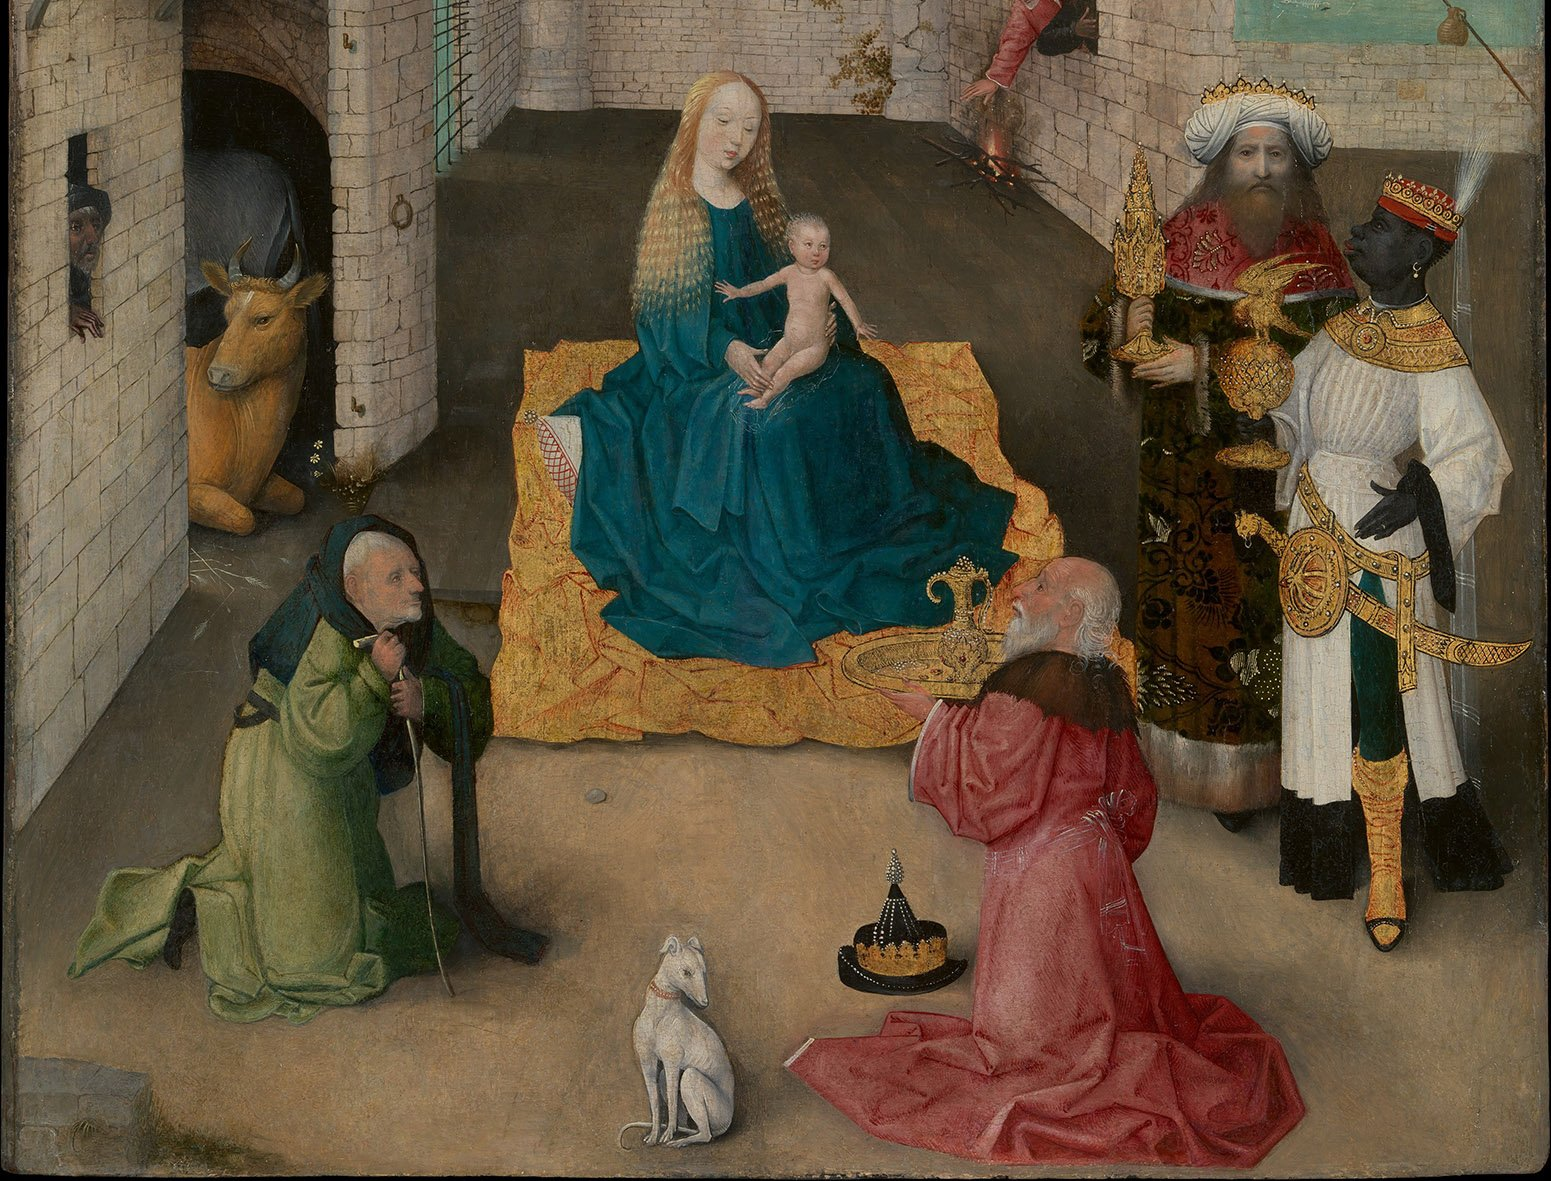 Bosch's The Adoration of the Magi